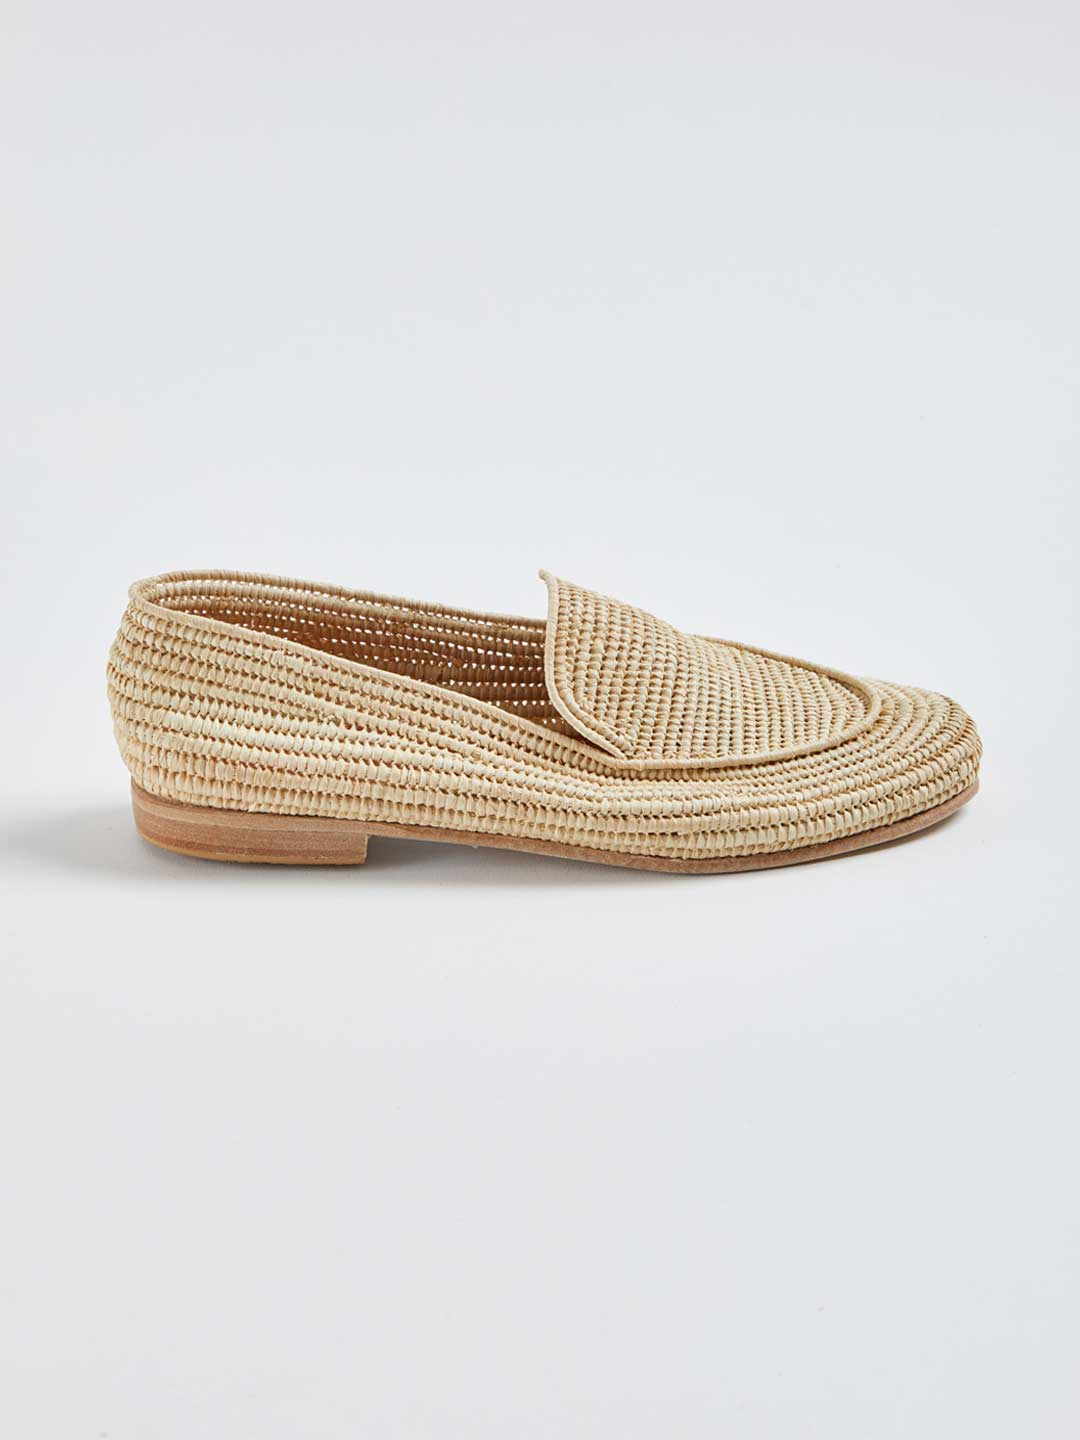 MARCELLE Hand Woven Raffia Loafers - Natural